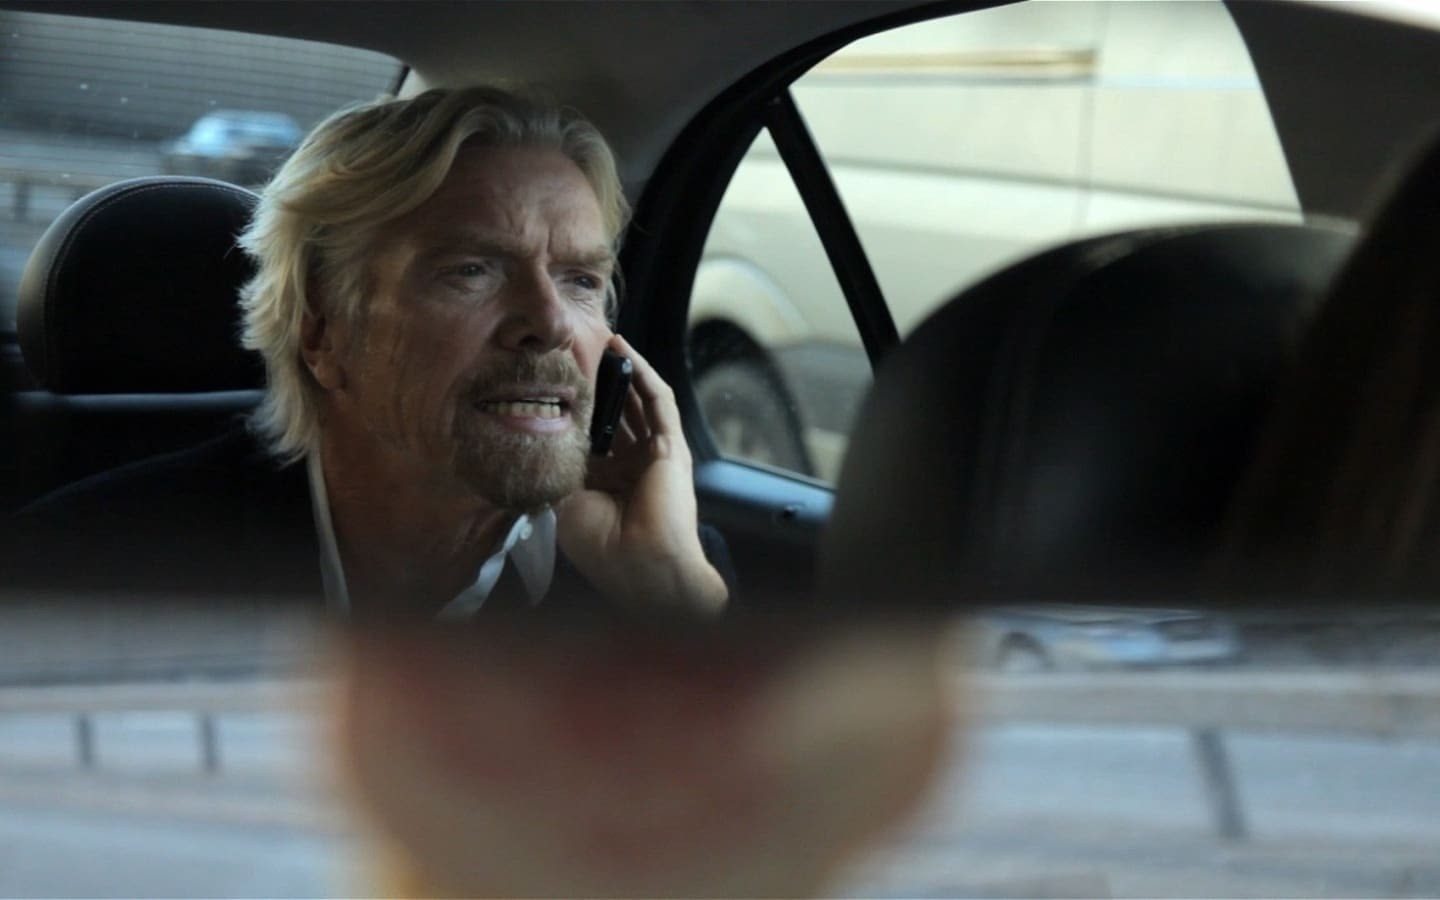 Richard Branson sitting in the back of a car on the phone